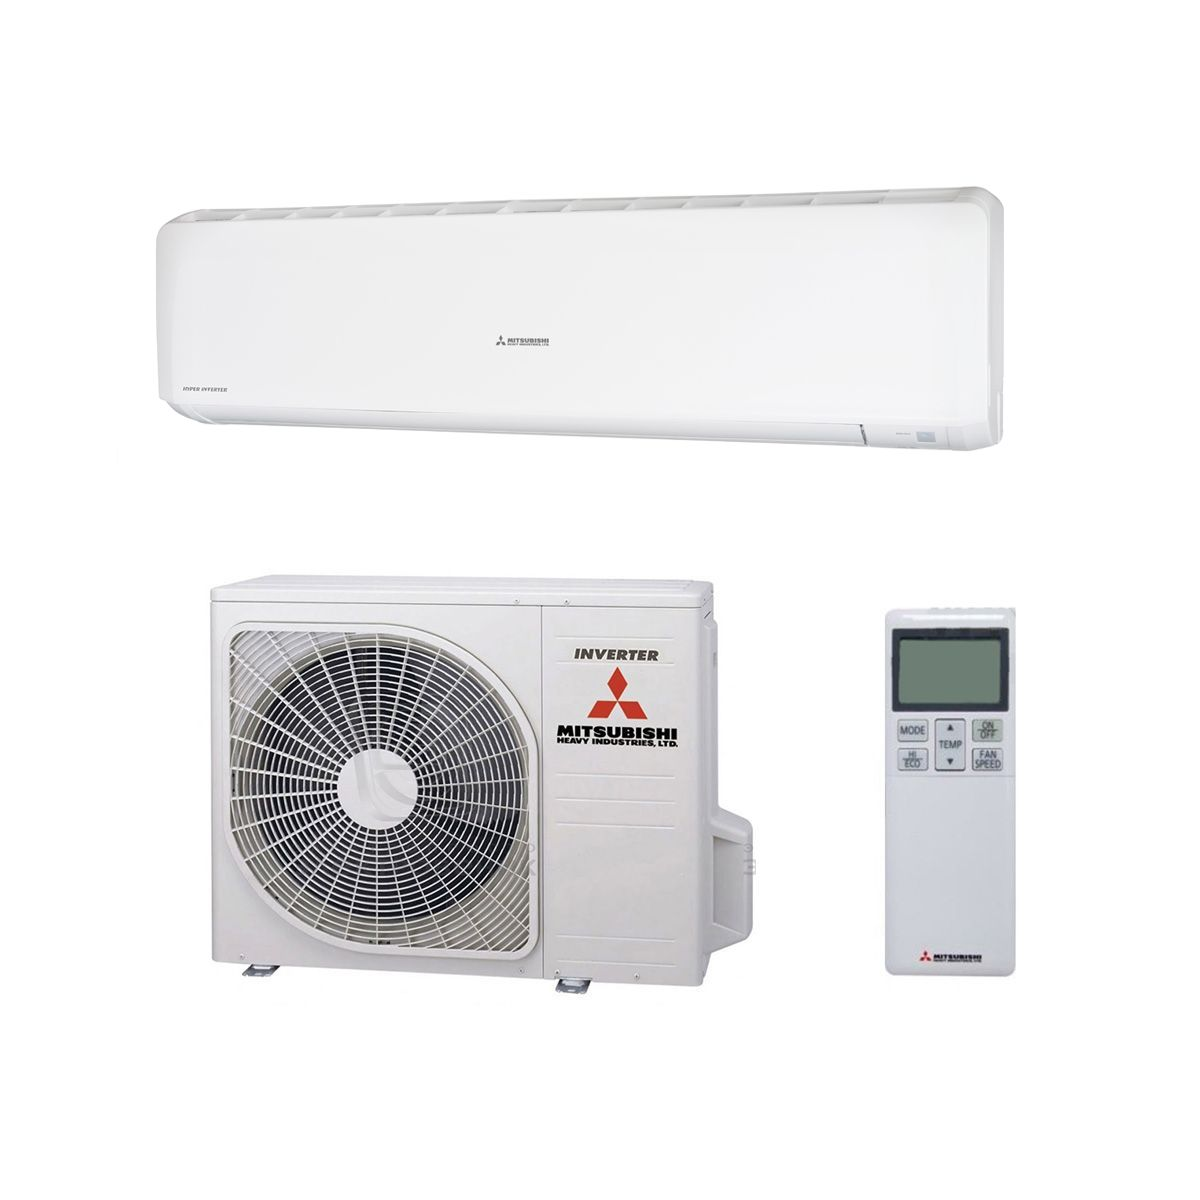 mitsubishi heavy industries air conditioning srk63zr-s wall mounted